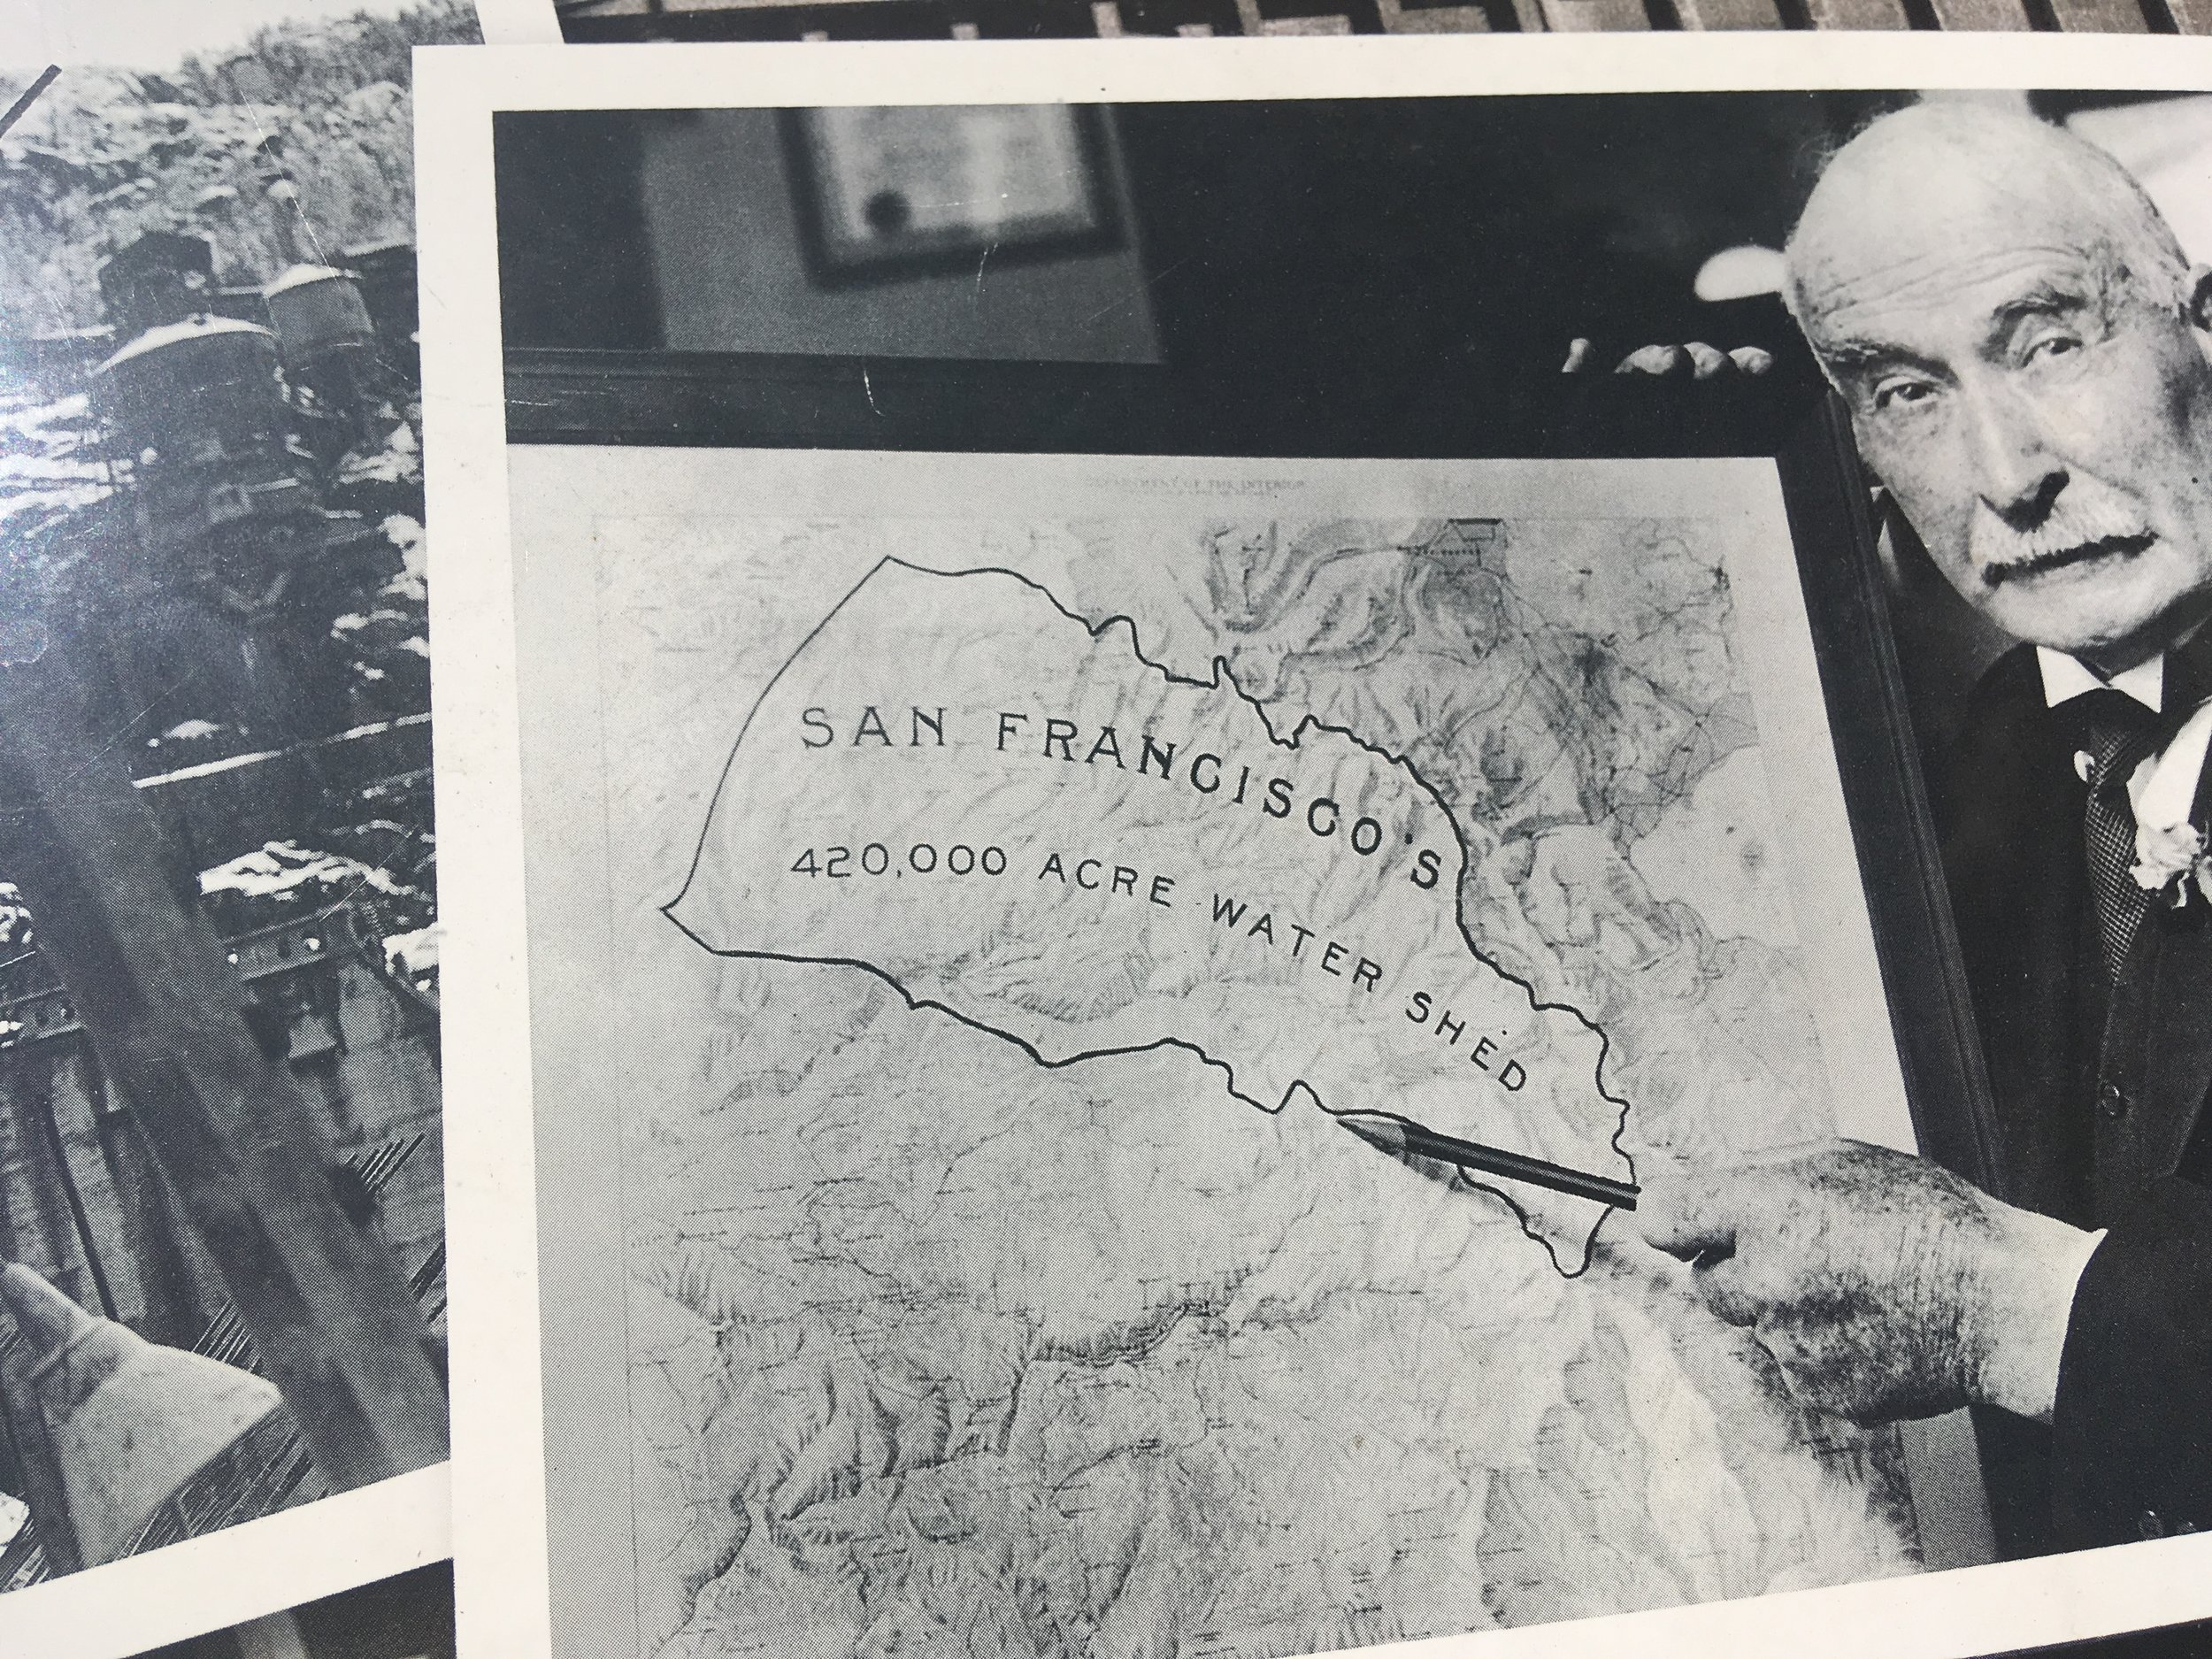 Michael M. O'Shaughnessy seen here pointing to Hetch Hetchy Valley, died 13 days before the first drinking waters first flowed to San Francisco.